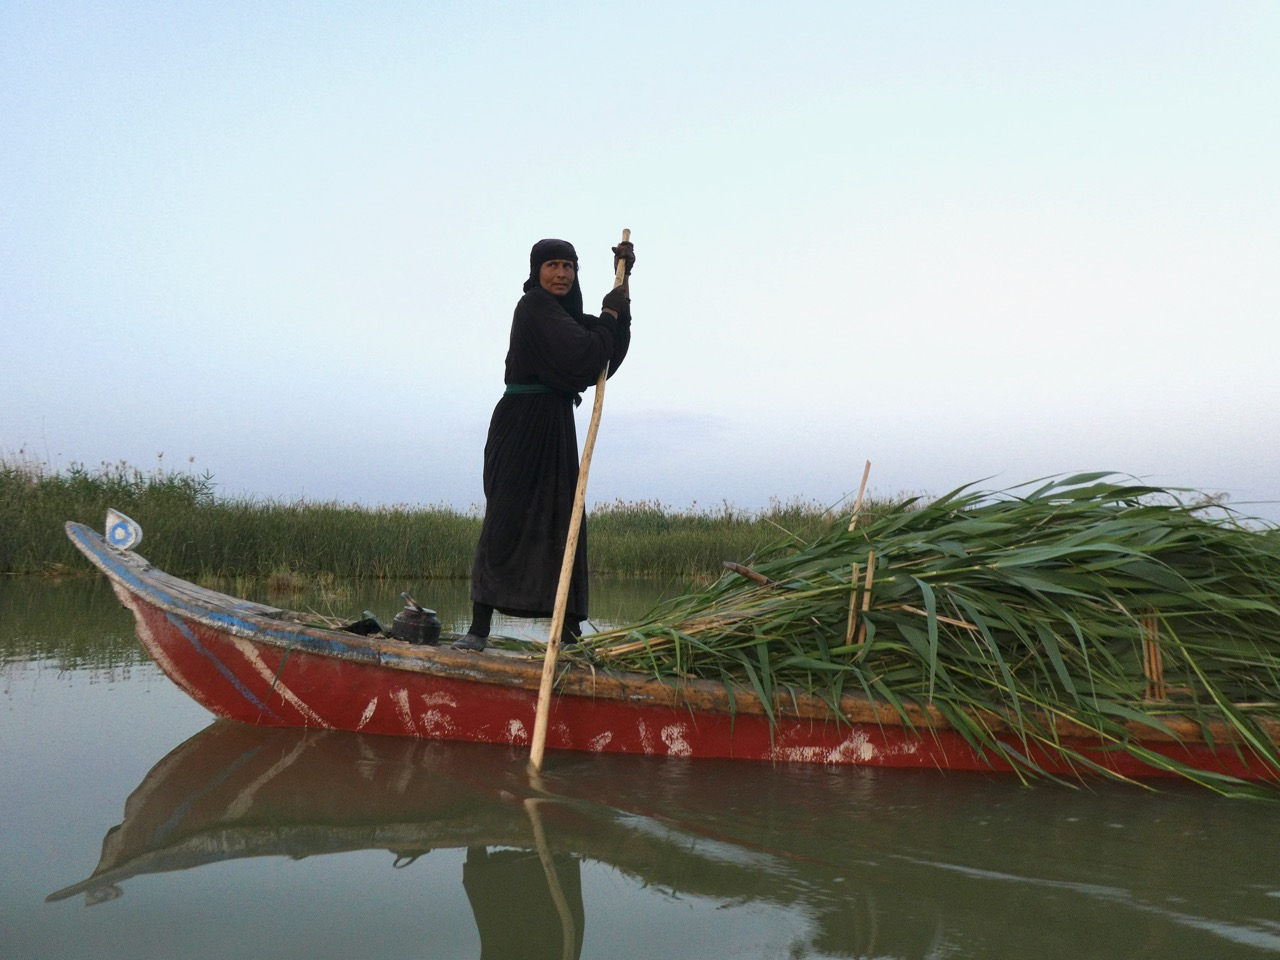 A woman who lives on the Mesopotamian Marshes near Chibayish, Iraq, poles her boat home at dusk with a load of Phragmites australis, native reeds locals use for building materials. Photo by Erica Gies.